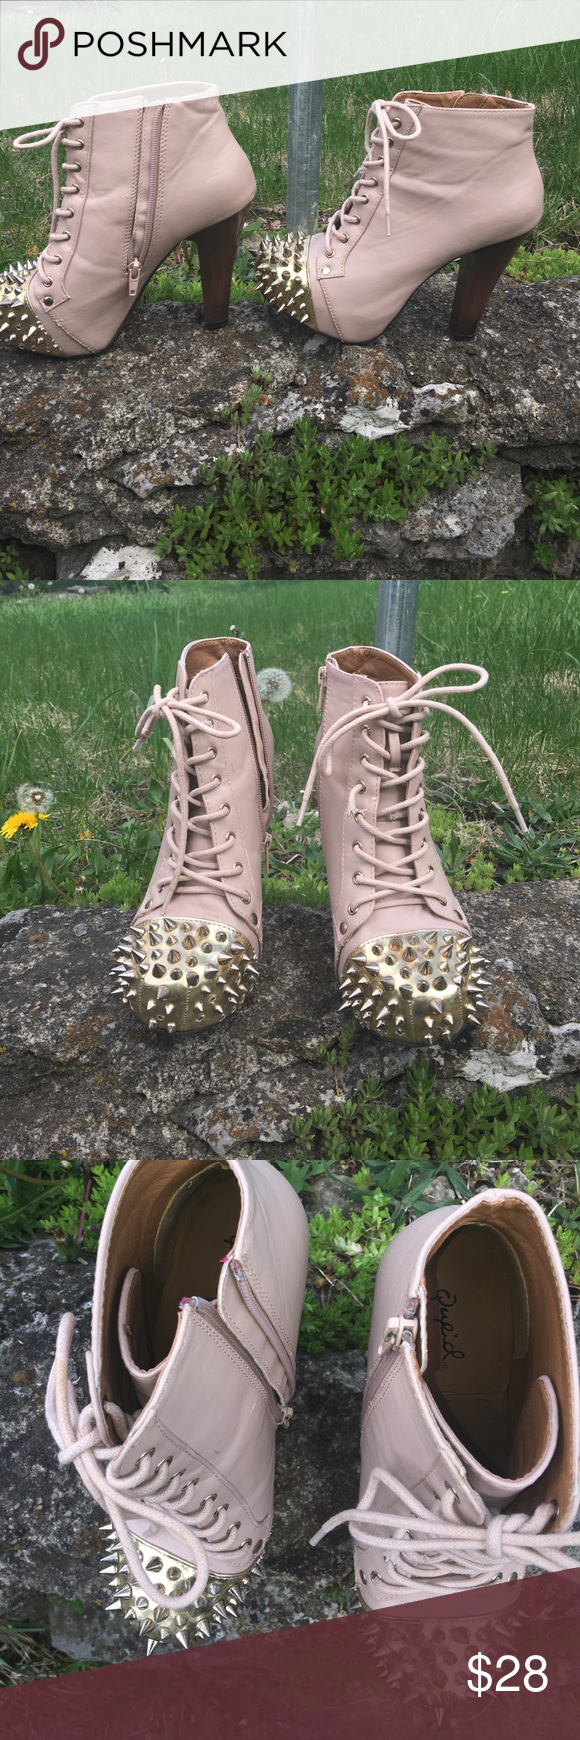 Flesh toned lace up booties with chunky heels 👠 So hot! A little bit of wear and tear but not noticeable. A few spikes missing on very bottom. Nick as shown in one of last pics. Broken shoe string but doesn't effect wearability as you can see. Quipid Shoes Ankle Boots & Booties